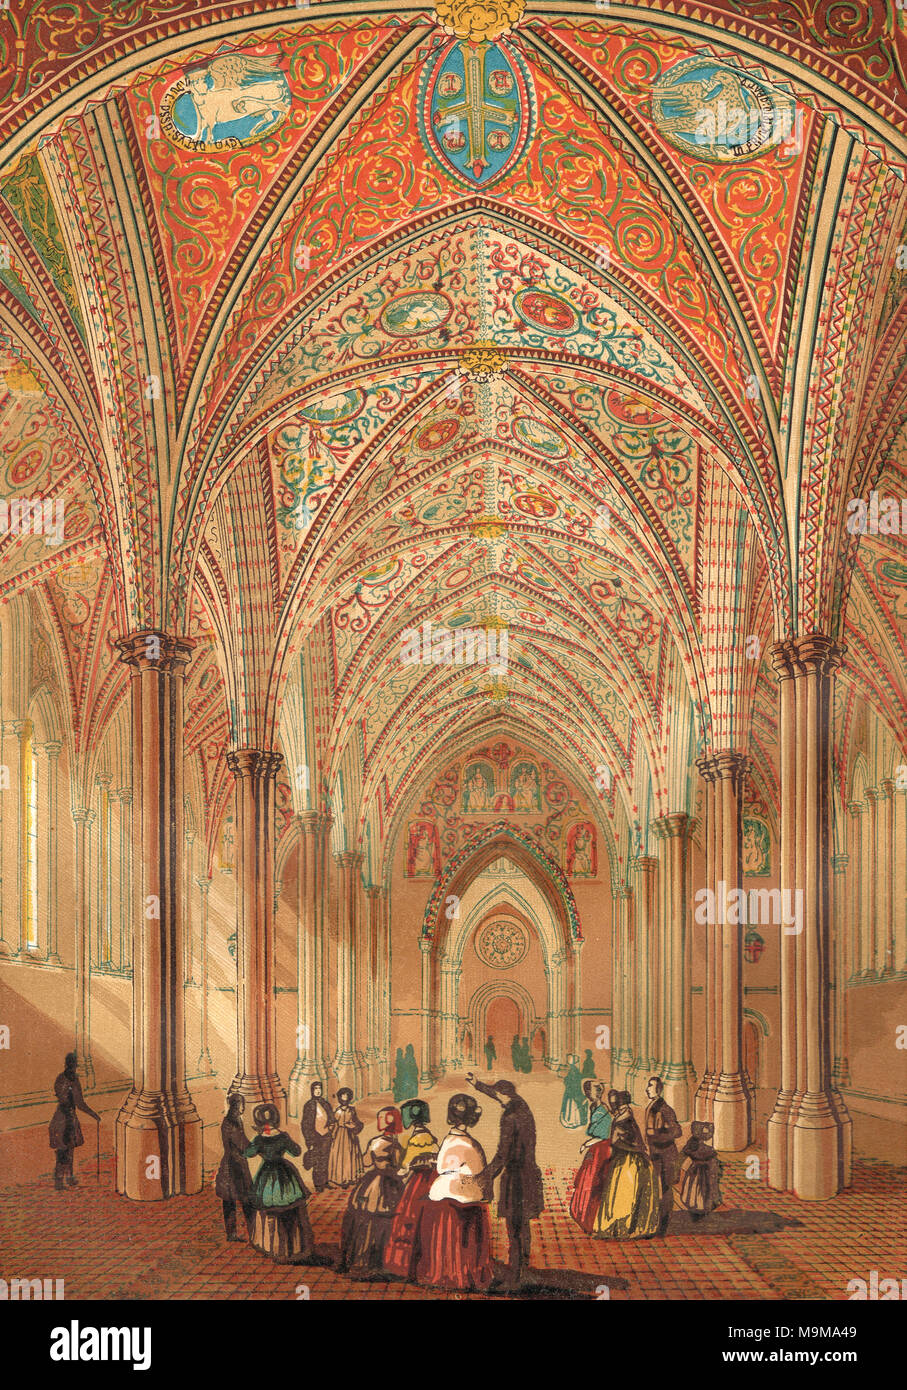 Interior of the Temple Church, City of London, England in the 19th century - Stock Image